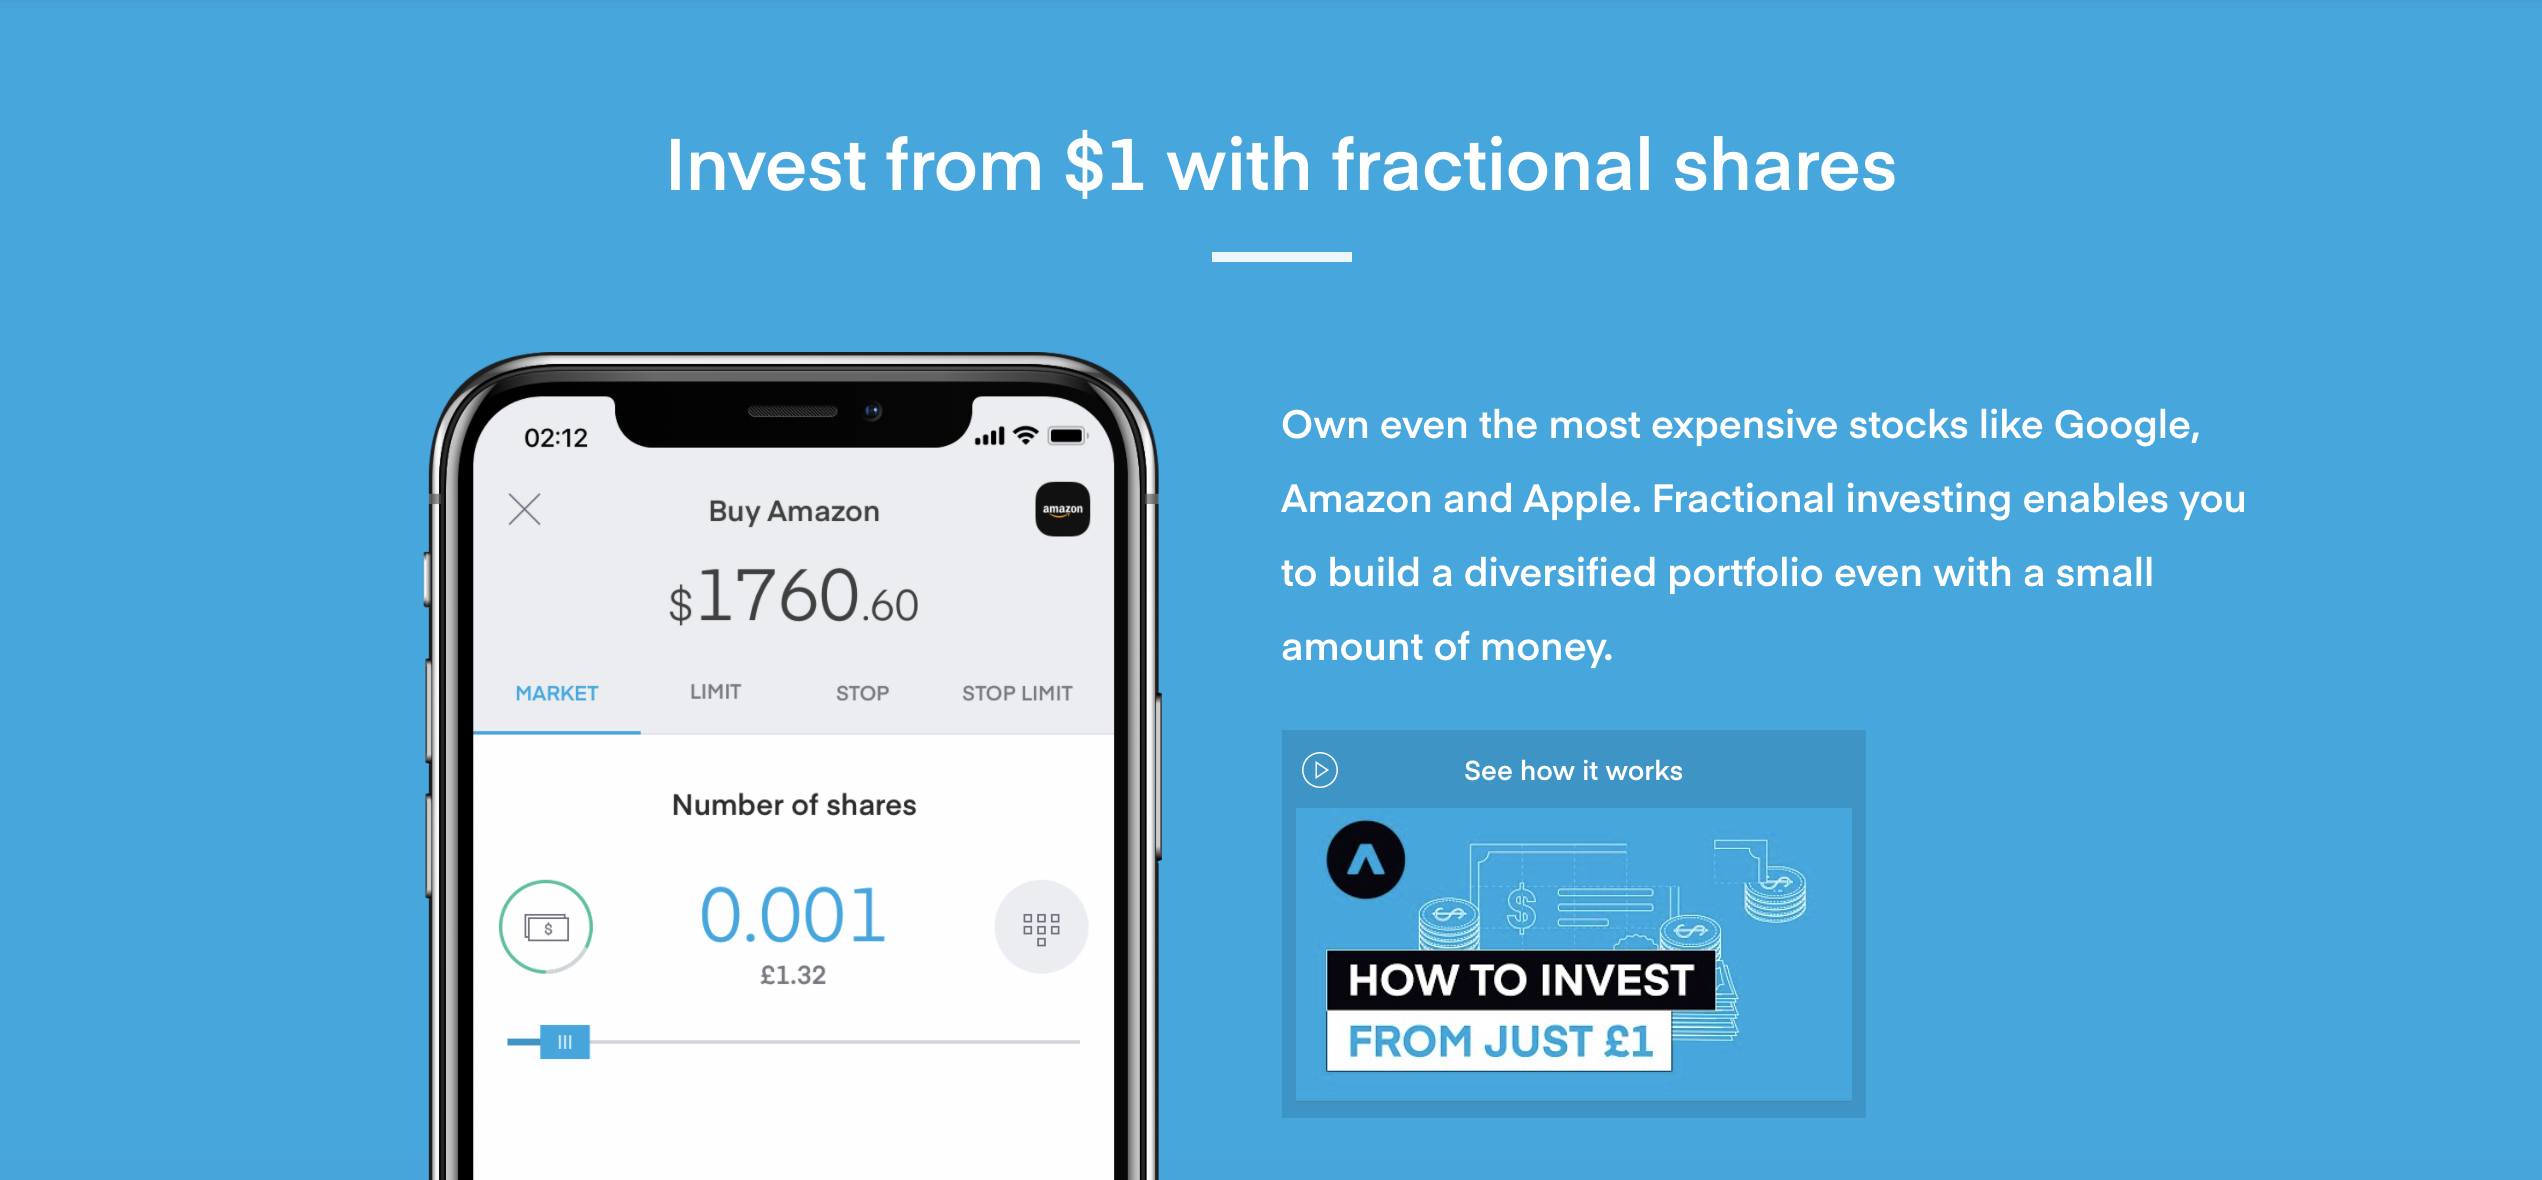 Like many other low-cost mobile trading apps, fractional shares are a cornerstone of investing. Image from trading212.com